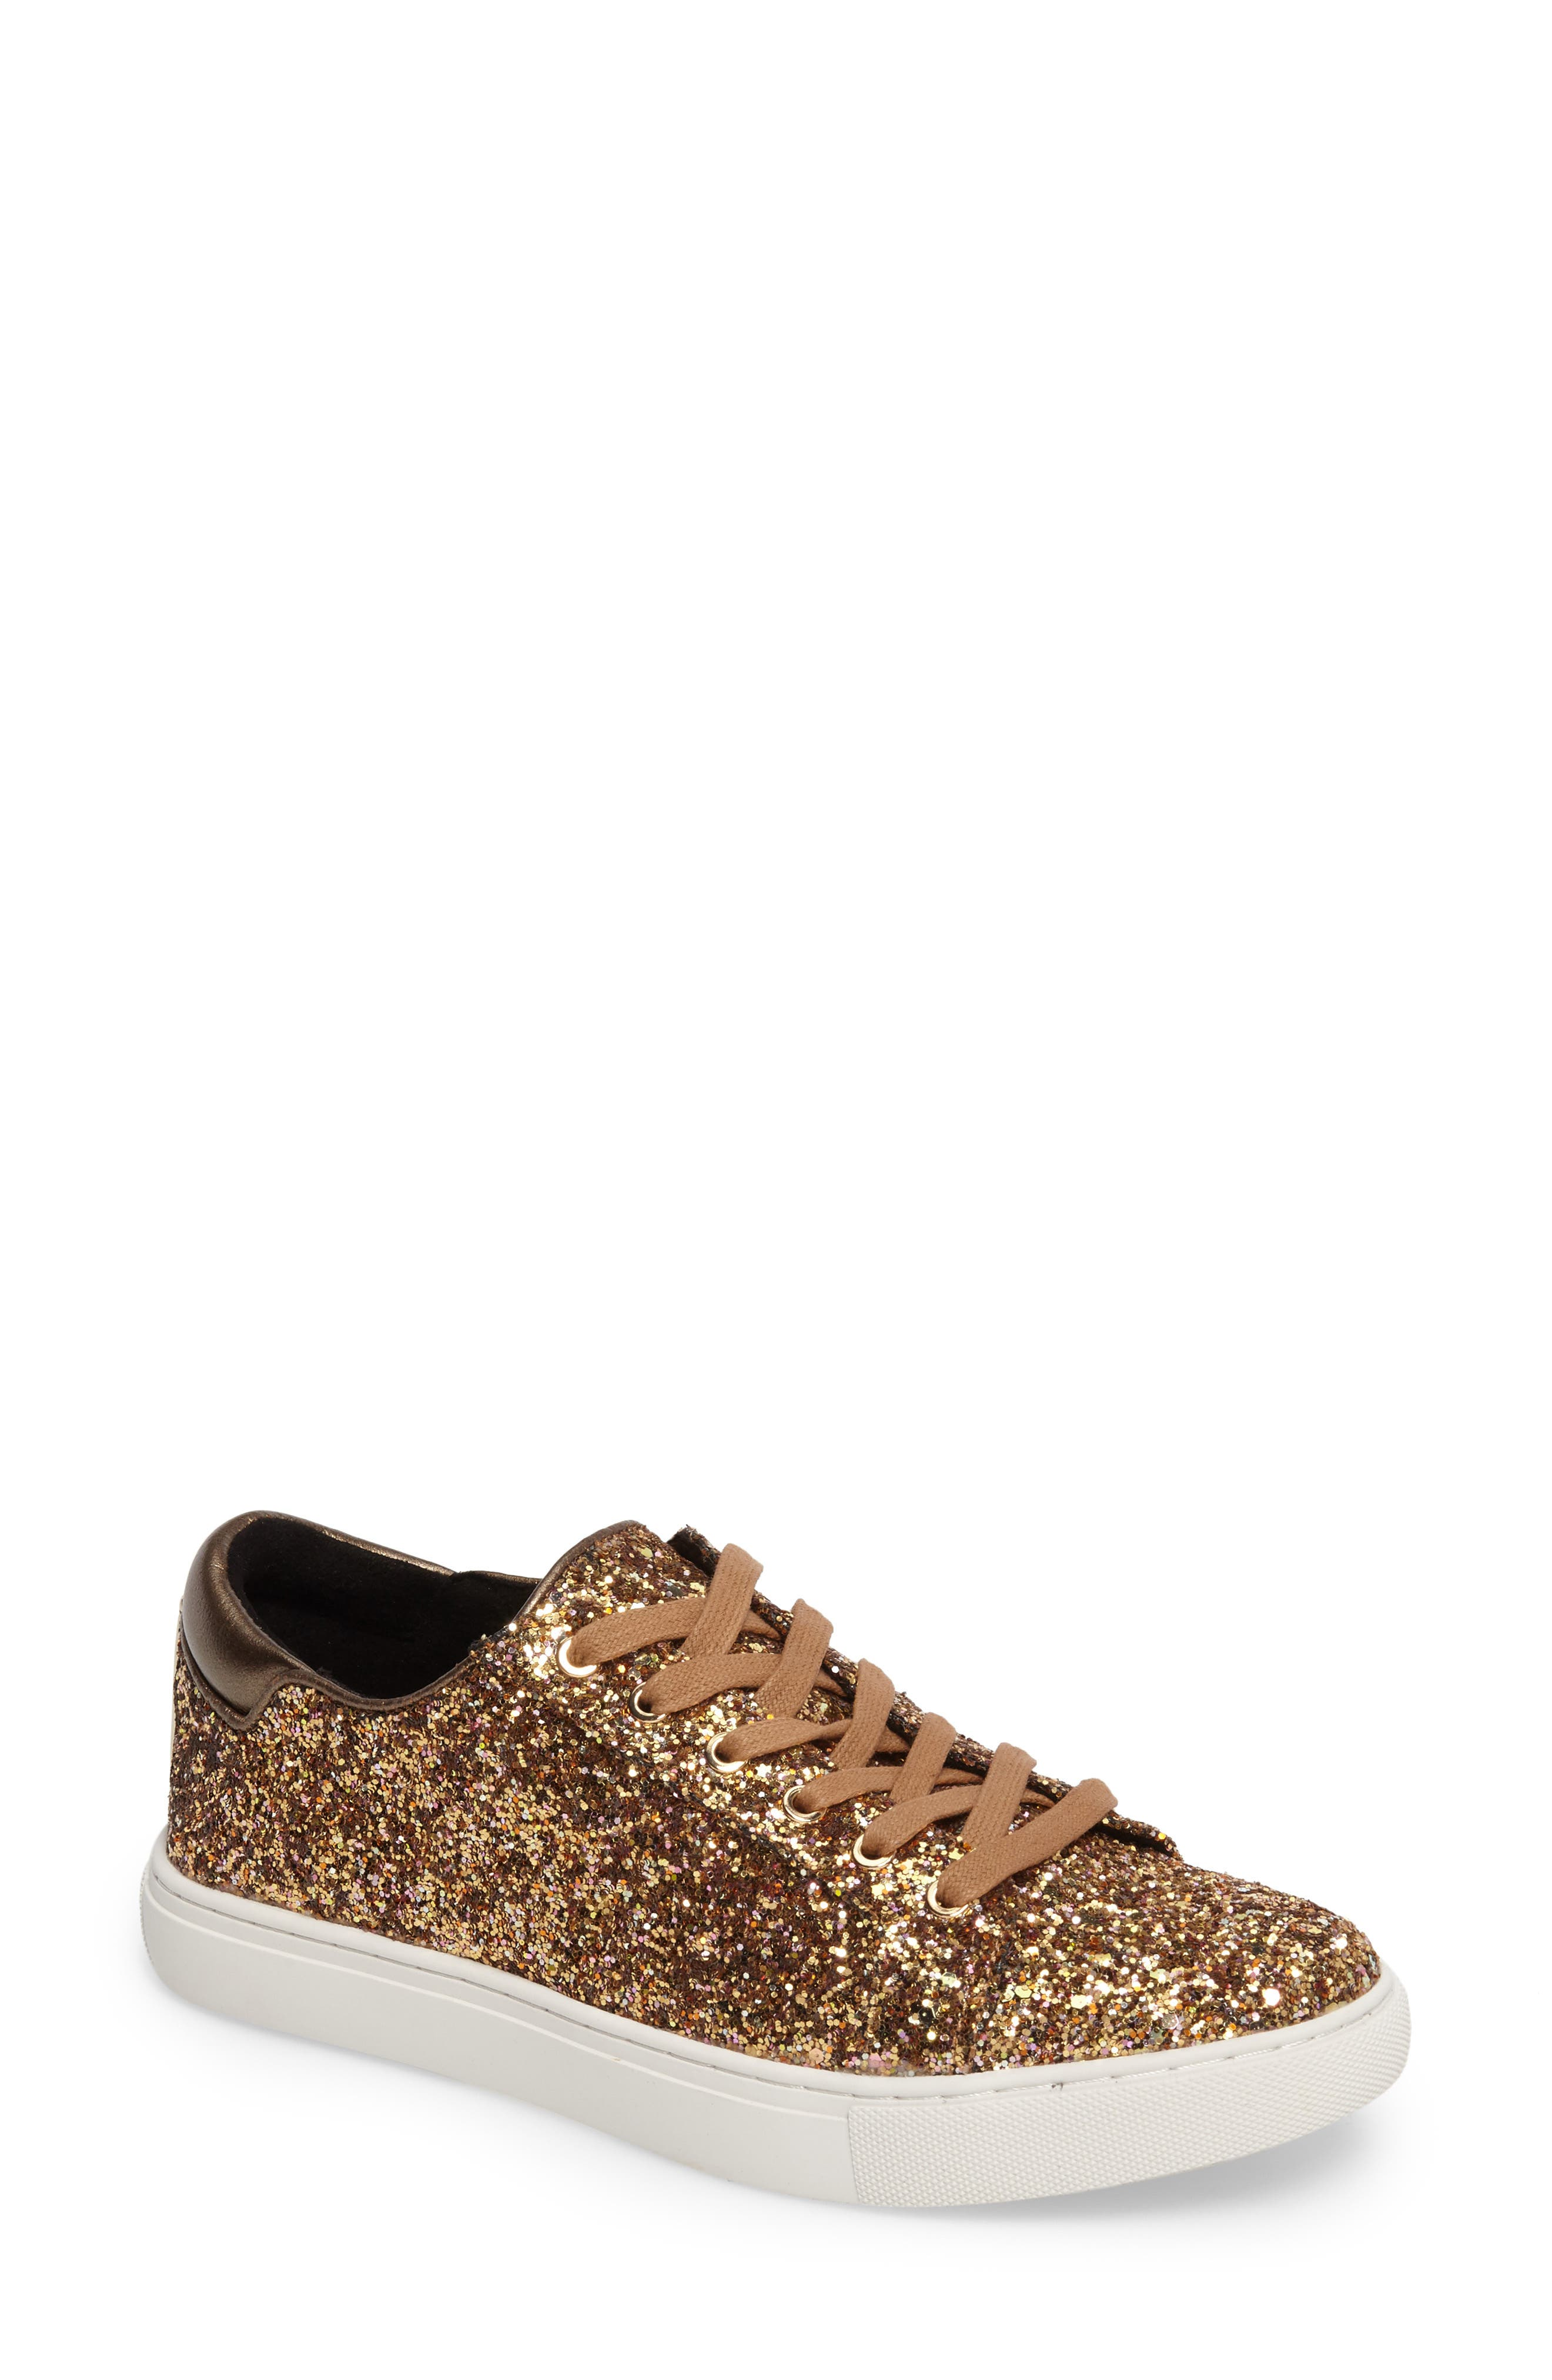 Main Image - Kenneth Cole New York Kam Techni-Cole Sneaker (Women)